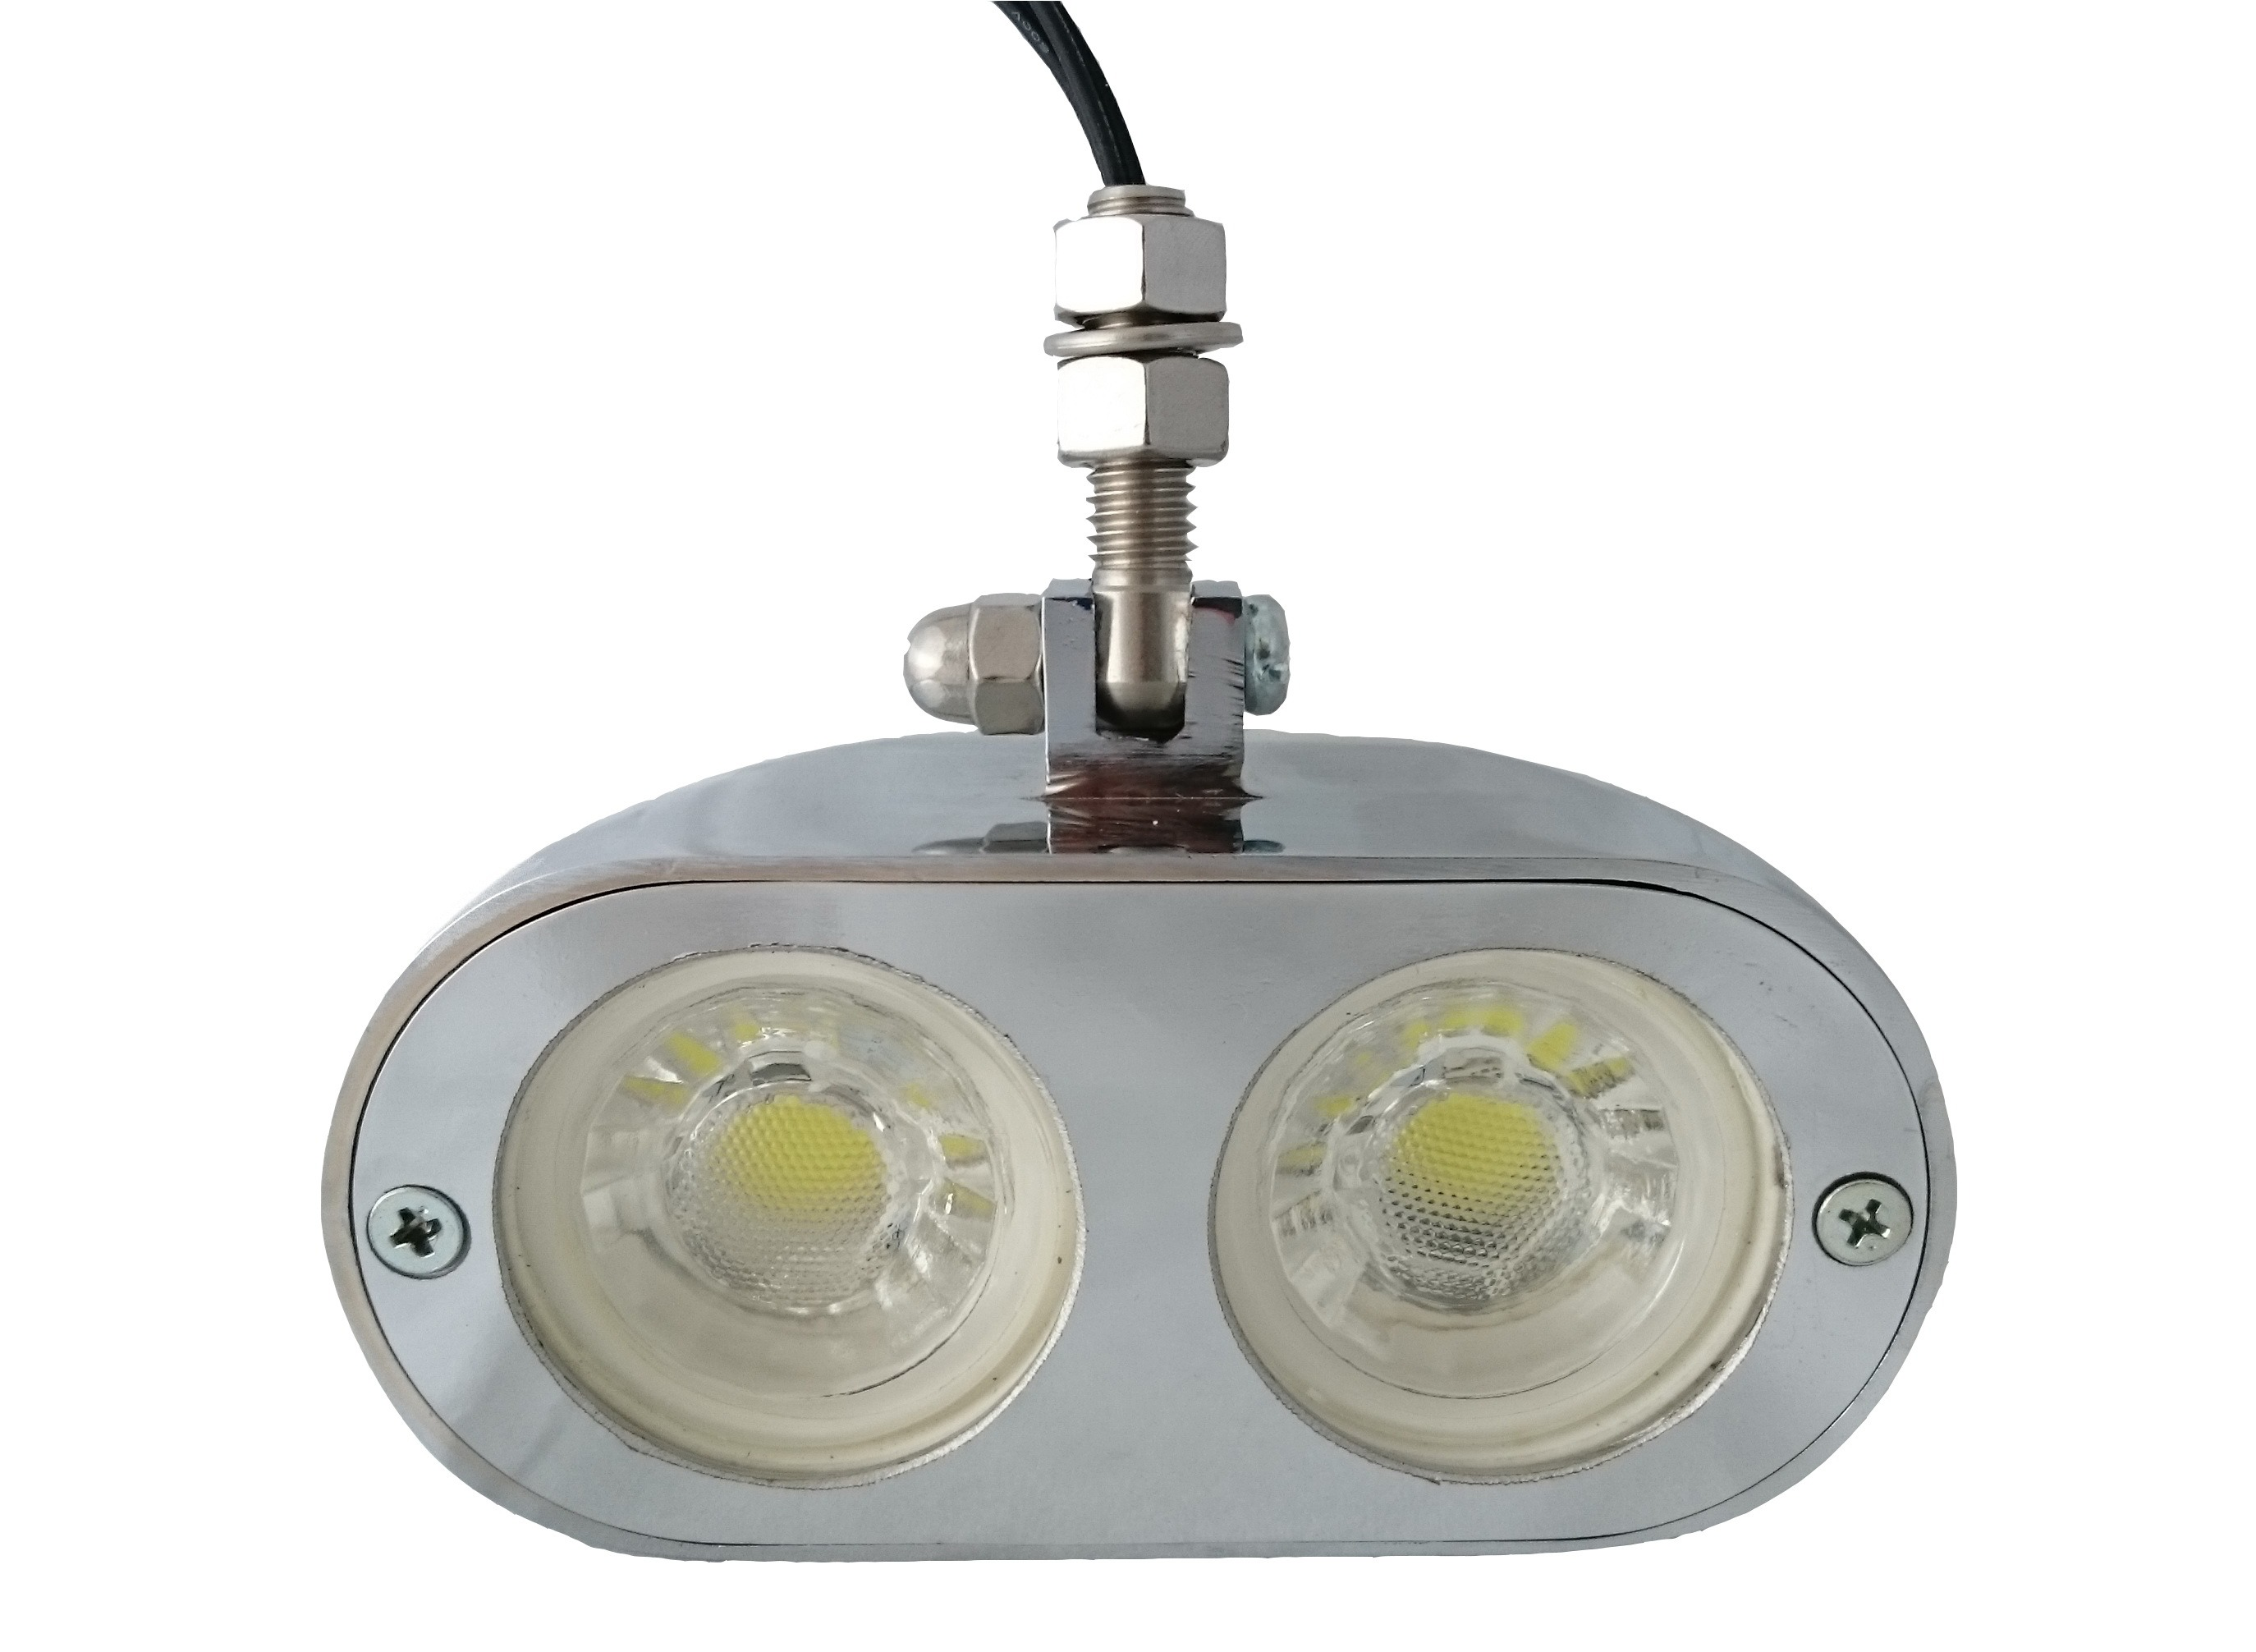 4x4 Pick Up LED Fog Lamp for Lighting Series made by Kao Tai Enterprise Co., LTD. - MatchSupplier.com